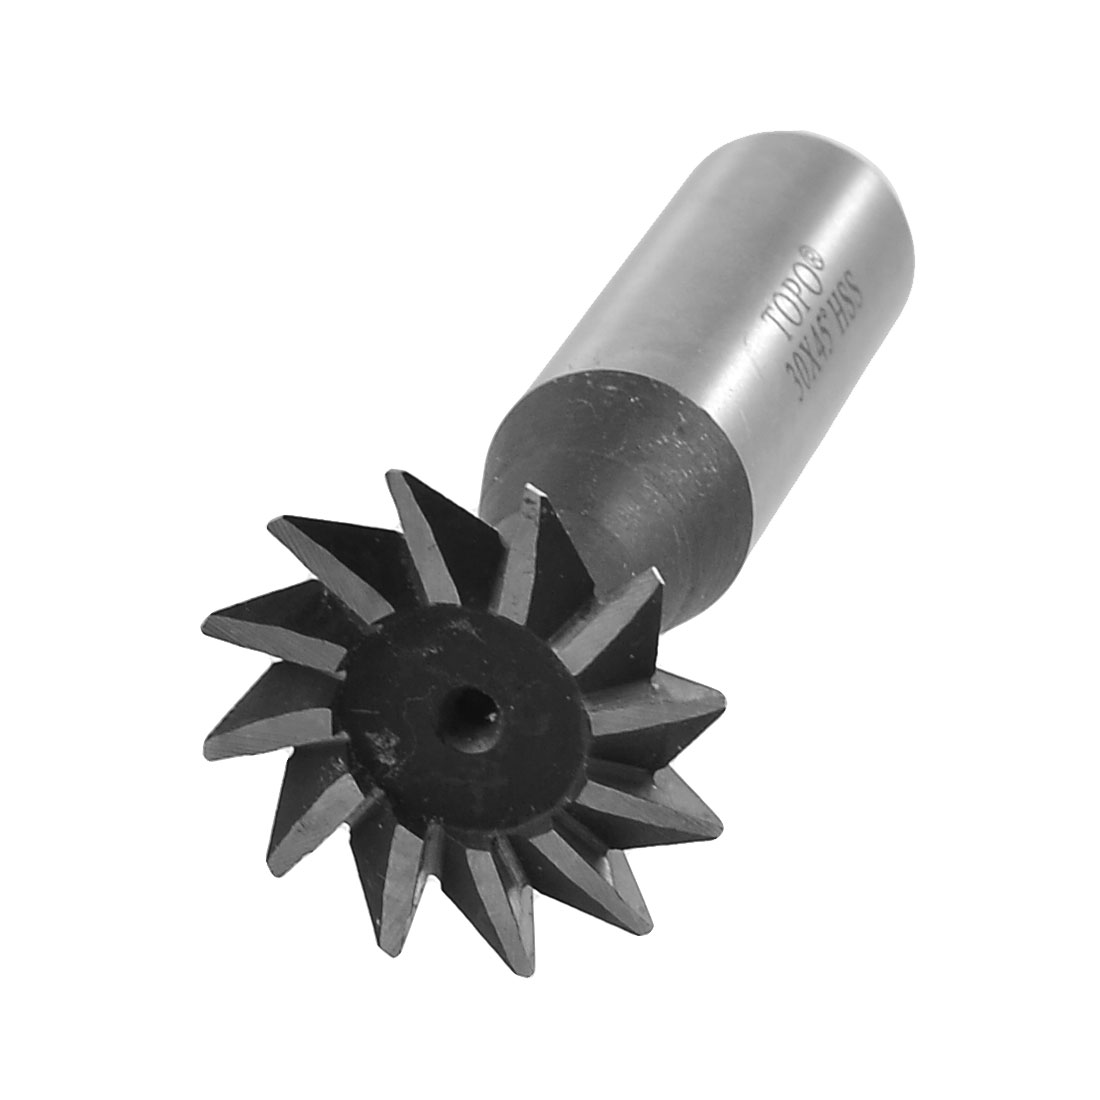 30mm Cutting Diameter 45 Degree Straight Shank Dovetail Milling Cutter